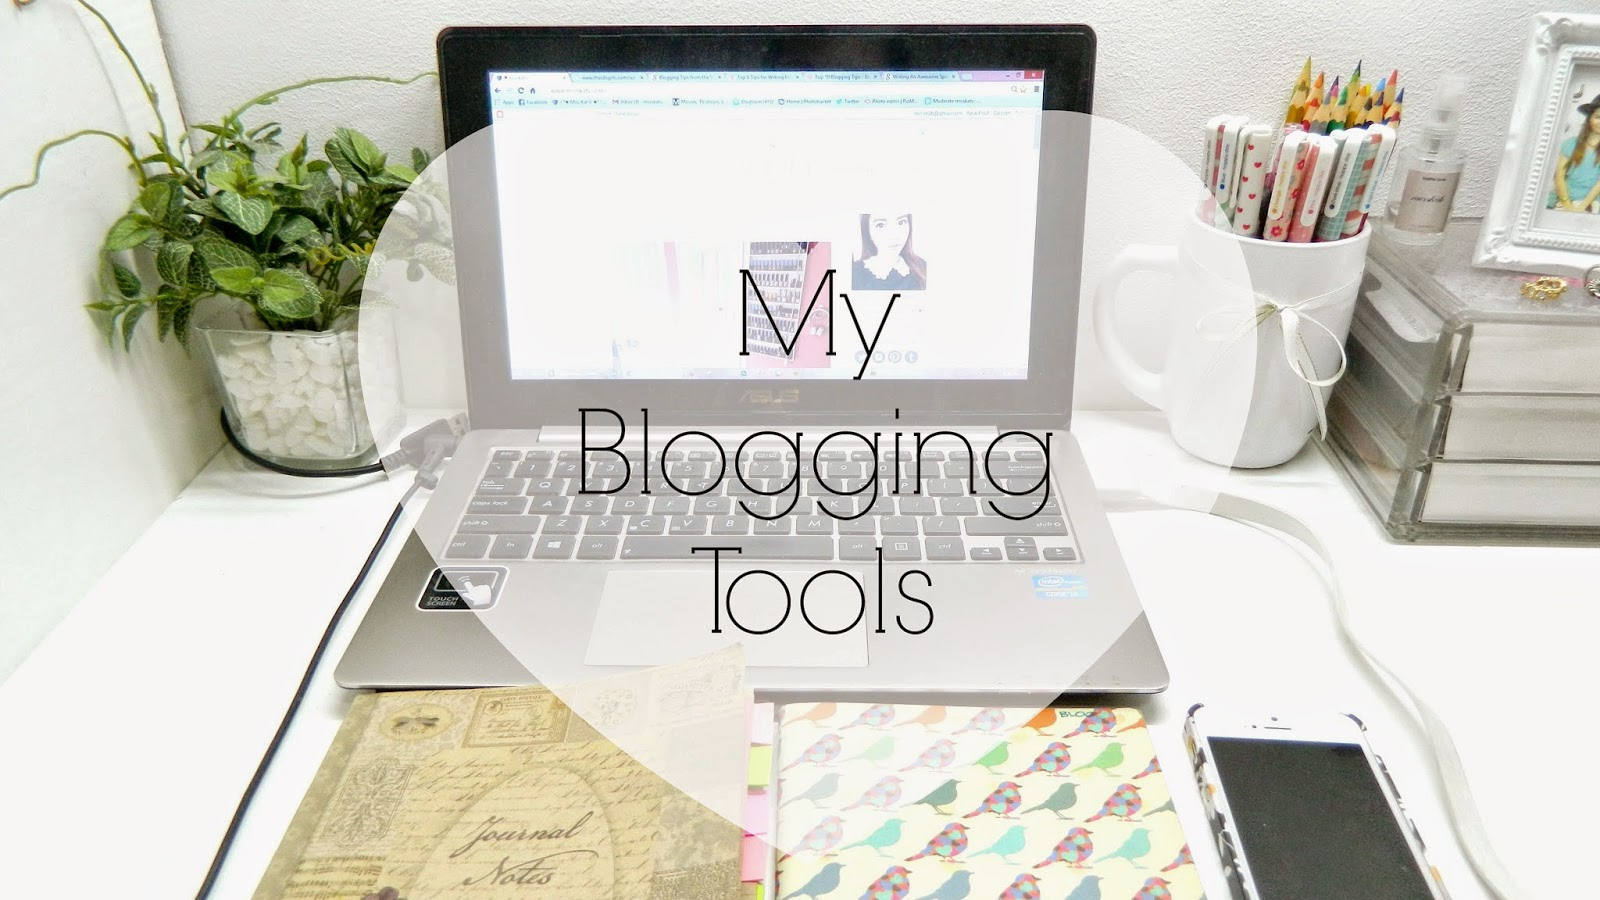 my blogging tools blogger gadgets review tips ideas guide laptop asus vivobook nikon coolpix l120 iphone 5s papemelroti notebook pens